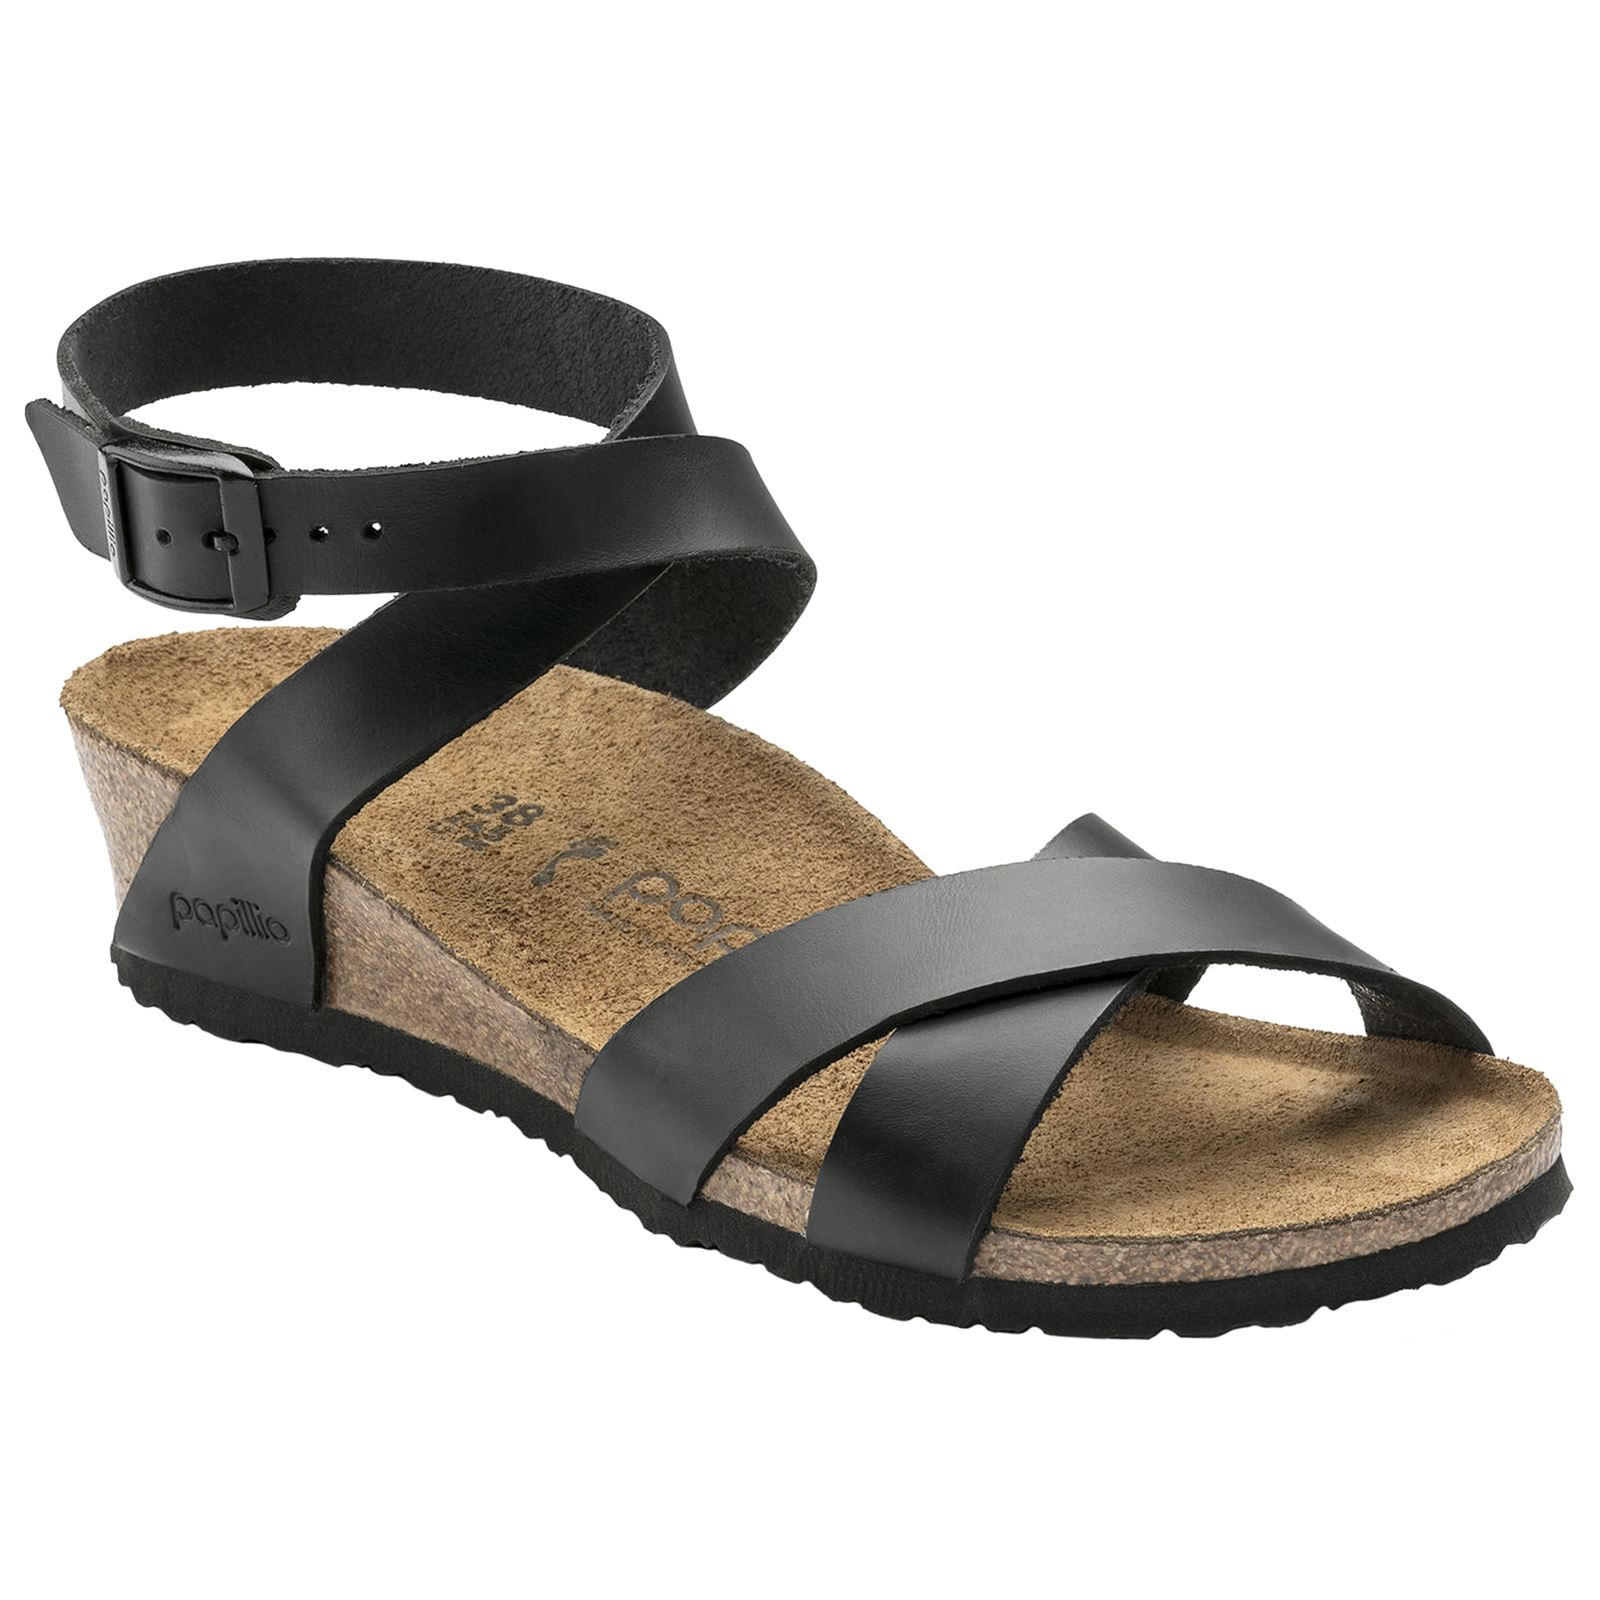 48da7ee6154 Details about Papillio by Birkenstock Lola Black Womens Leather Wedge  Strappy Sandals